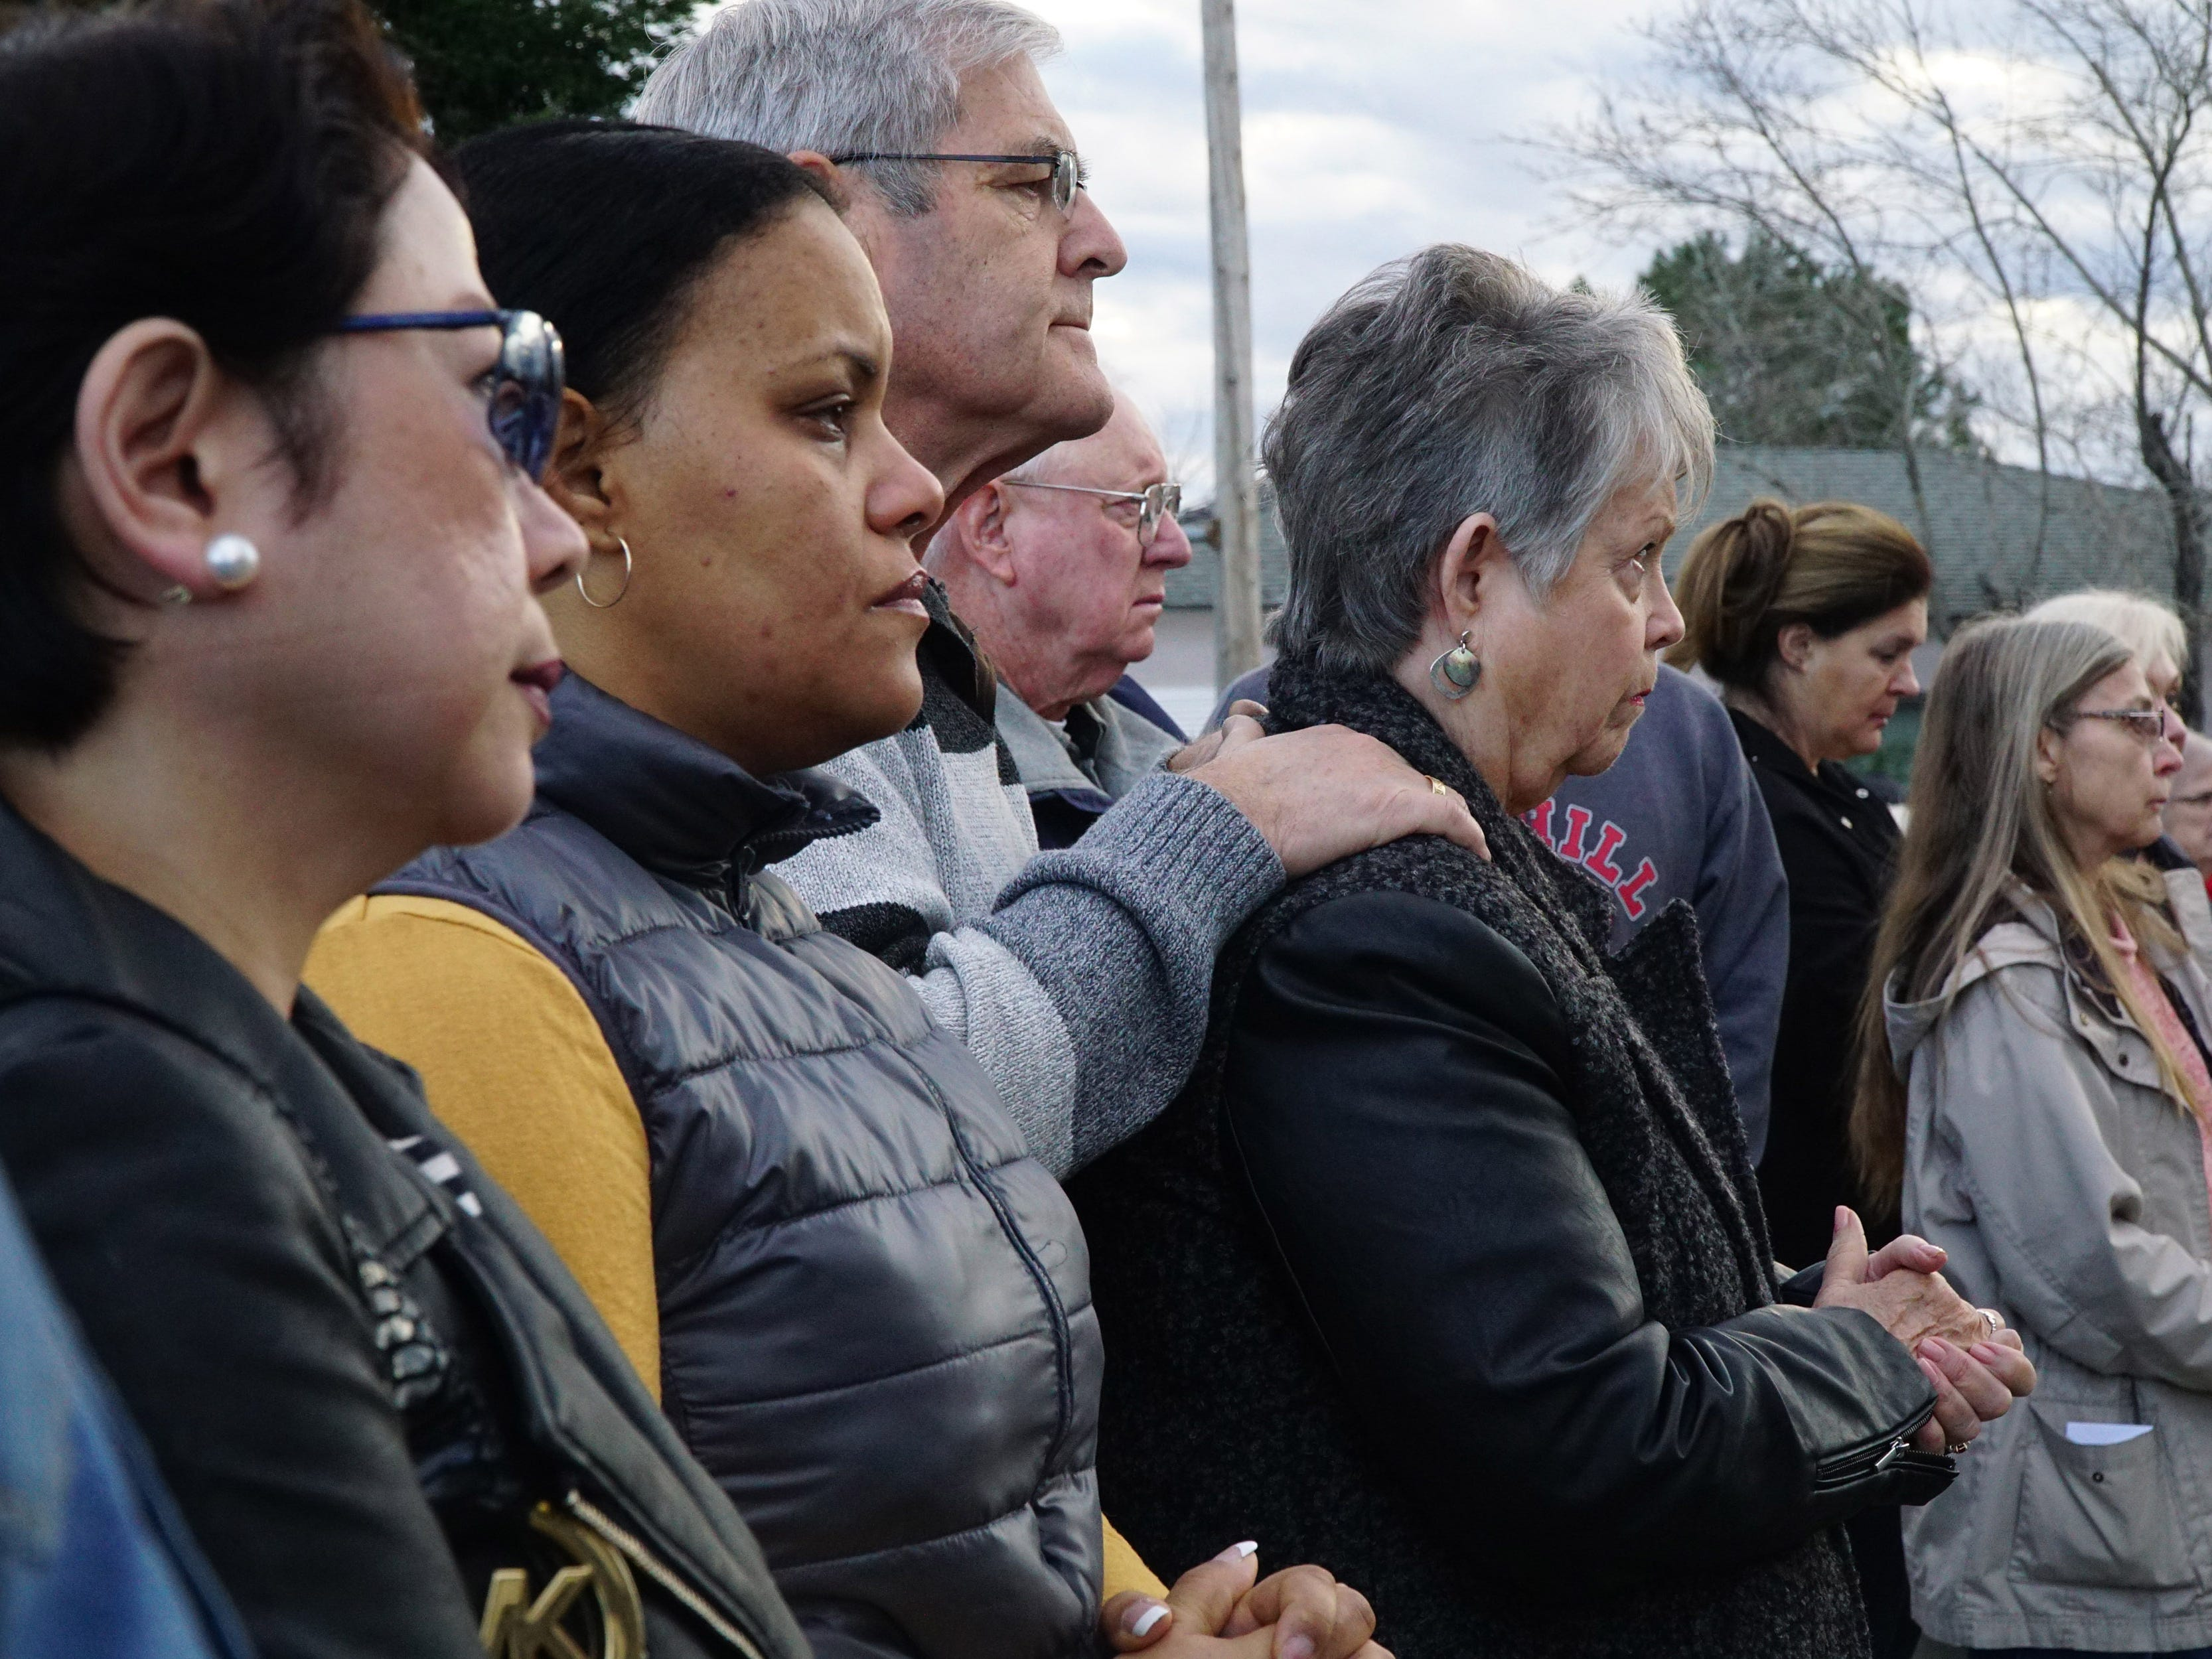 St. Joseph parishioners gather with family and friends of Melvin and Bennett Riffel for a memorial service on Tuesday morning, March 12, 2019 at the St. Joseph Church bell tower.  The Riffel brothers were among 157 people killed when an Ethiopian Airlines Boeing 737 crashed Sunday.